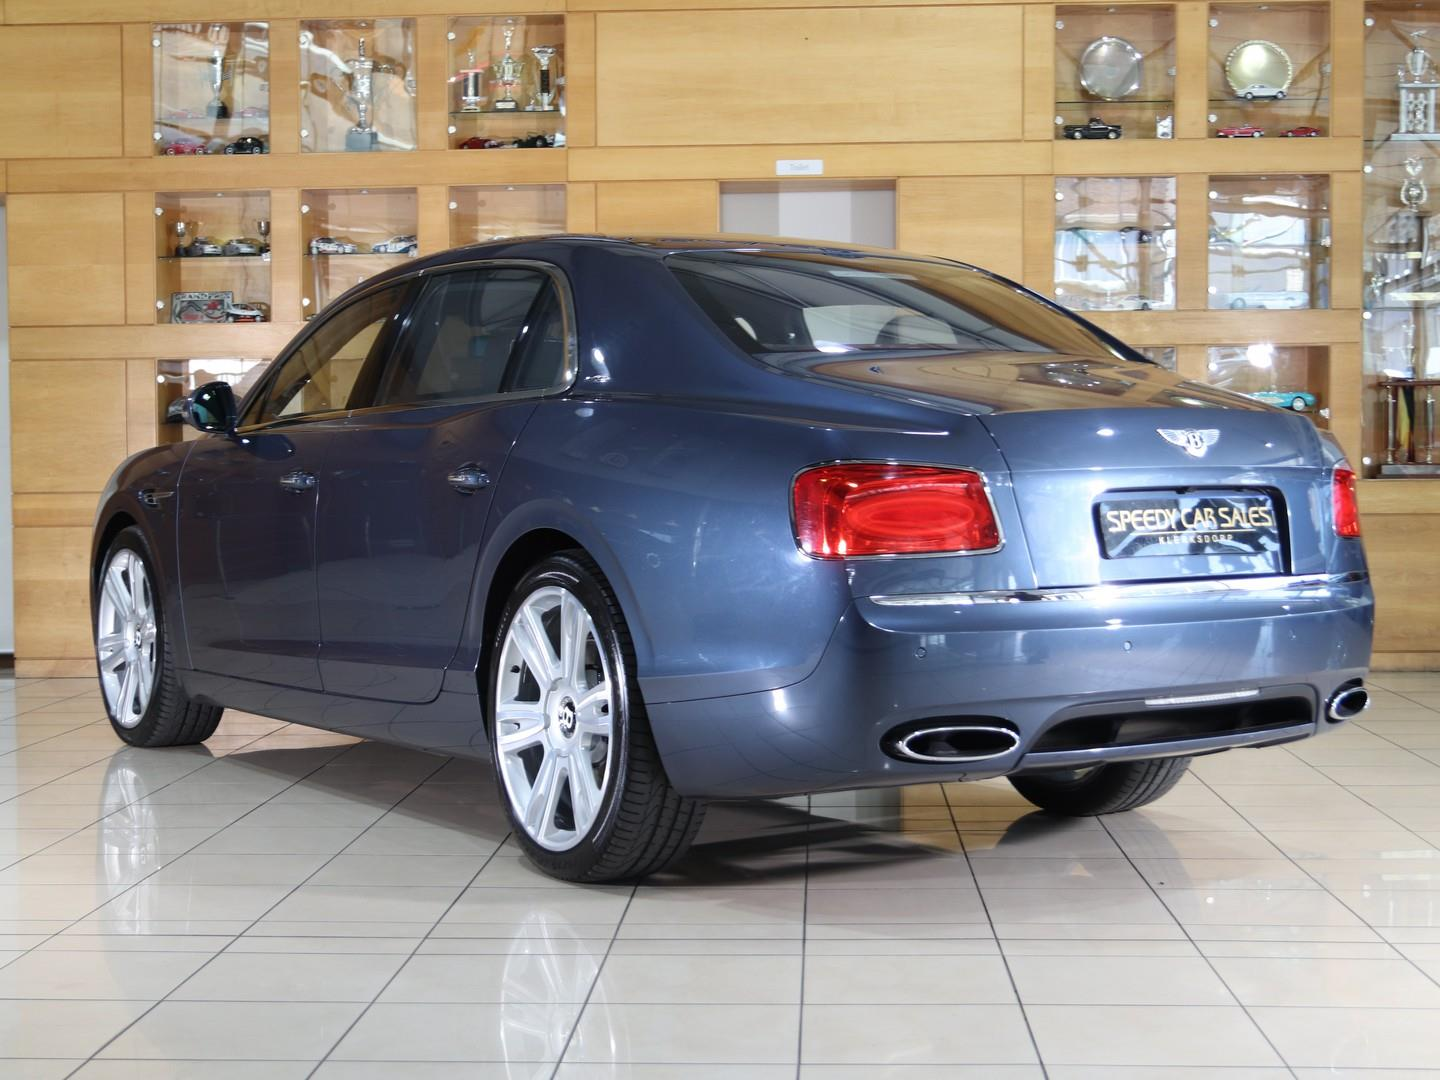 Bentley Flying Spur (W12) at Speedy Car Sales